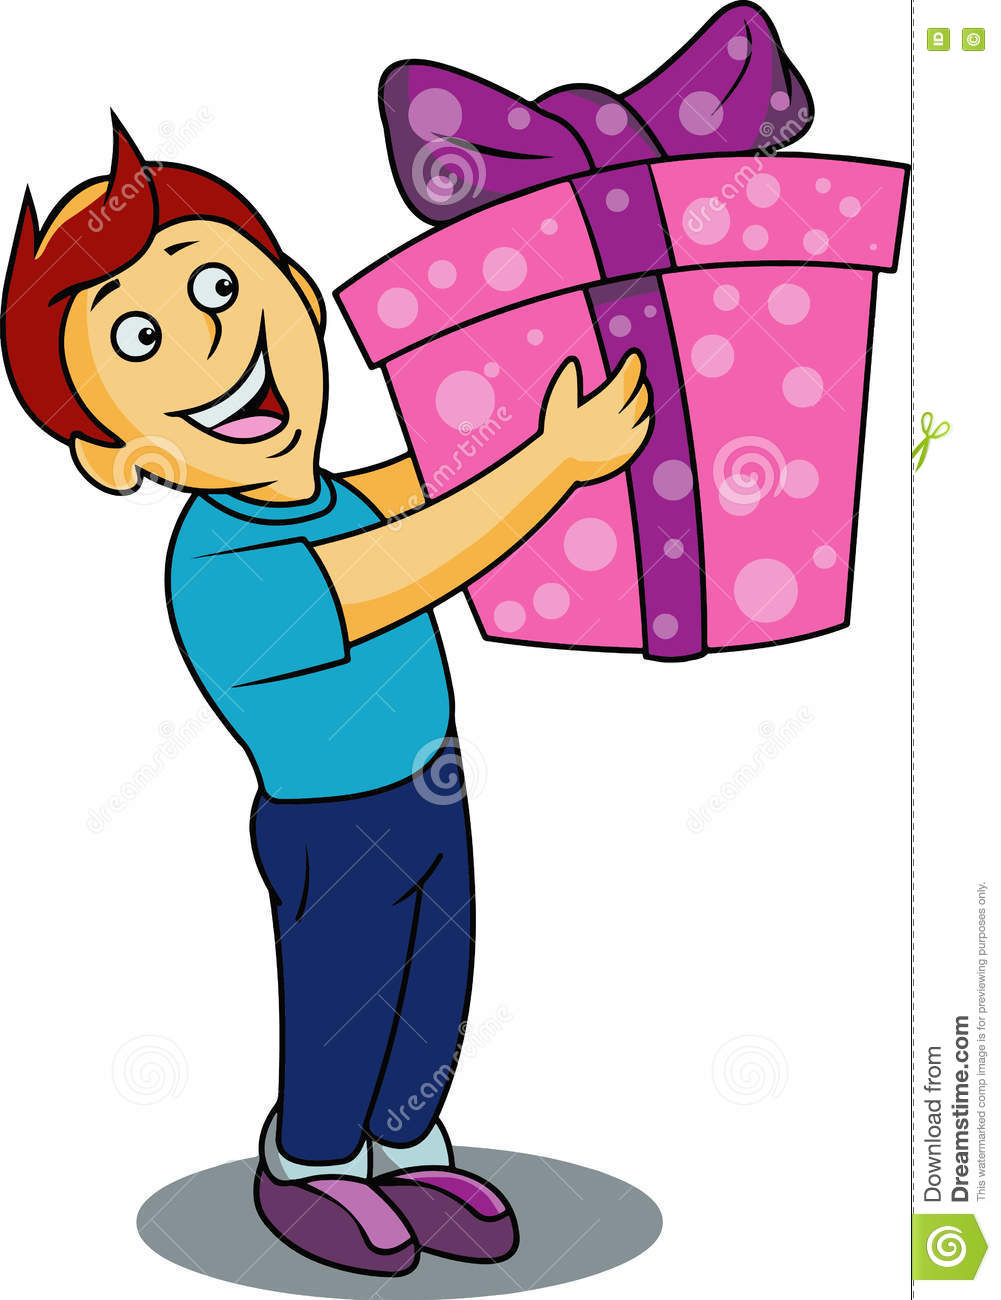 Boys gift giving stock vector illustration of background 77874012 boys gift giving background illustration negle Choice Image